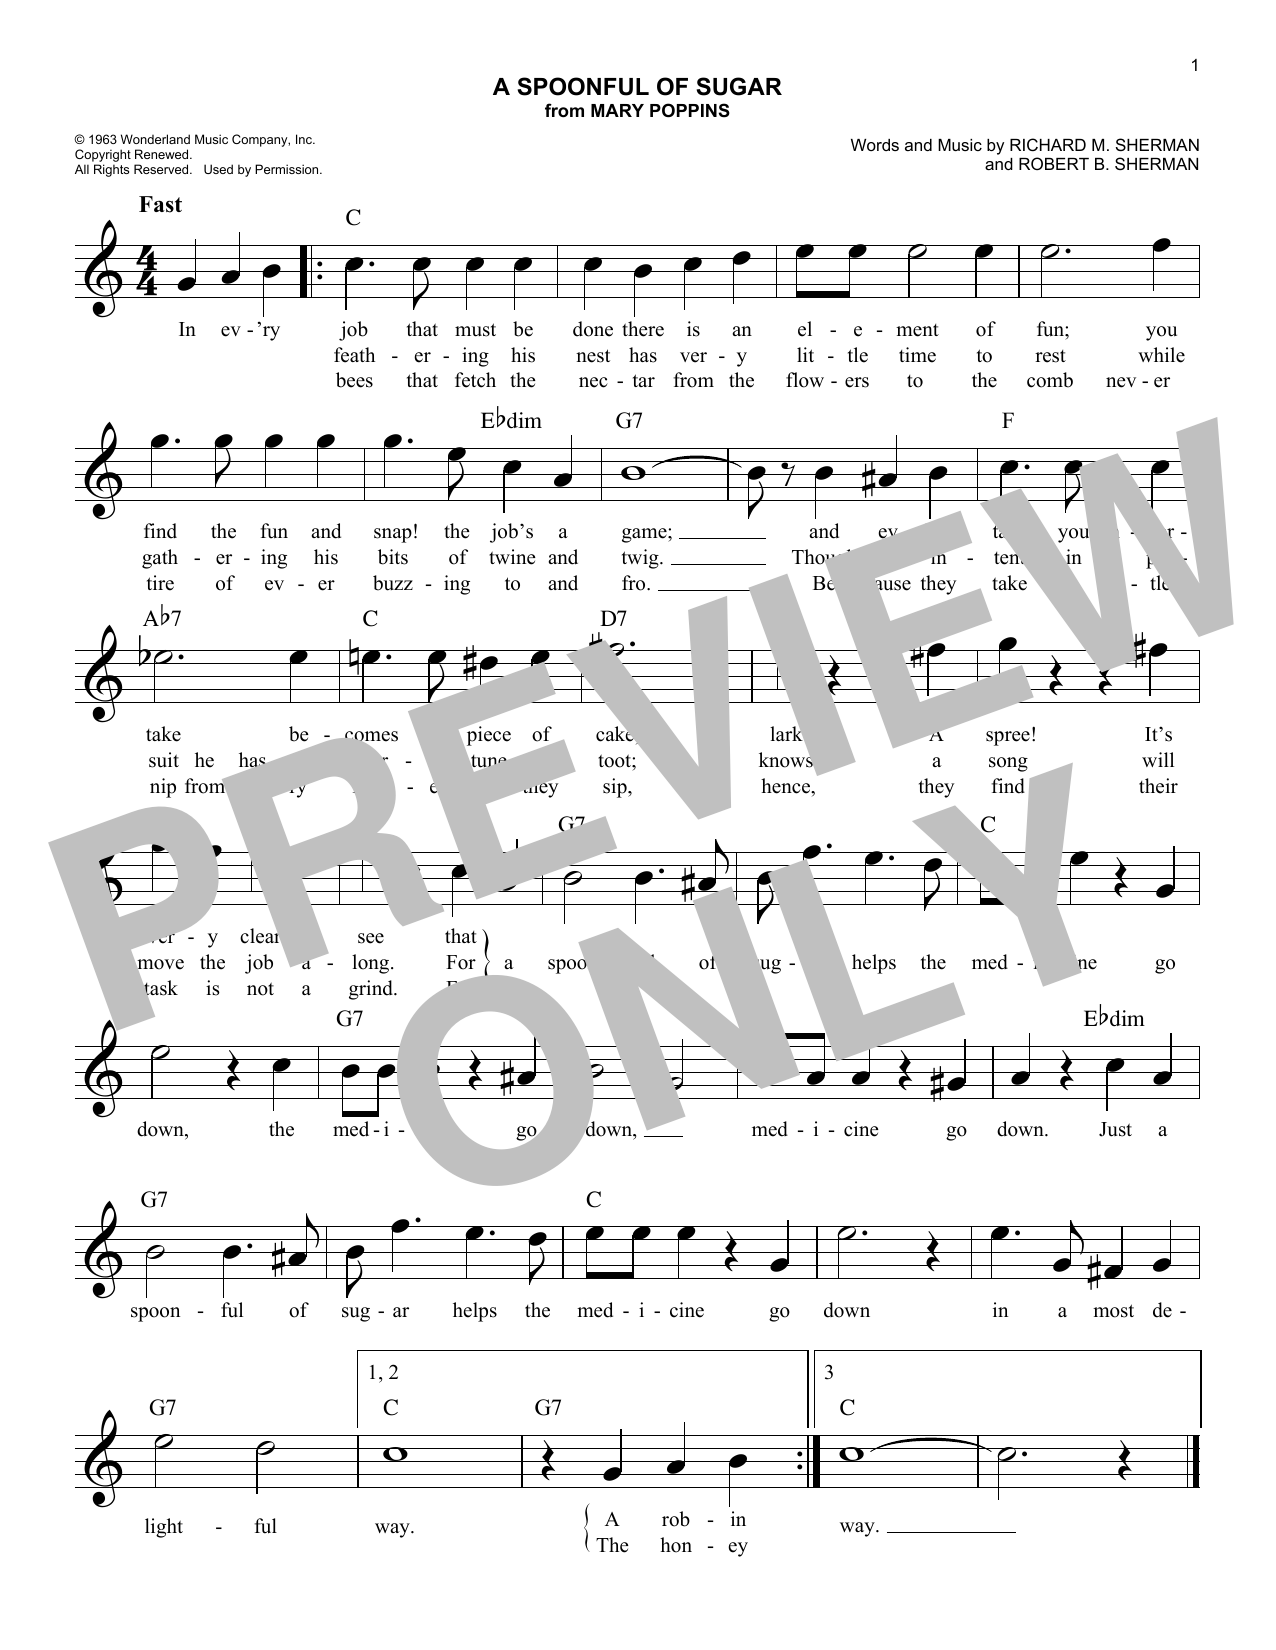 Robert B. Sherman A Spoonful Of Sugar (from Mary Poppins) sheet music notes and chords. Download Printable PDF.